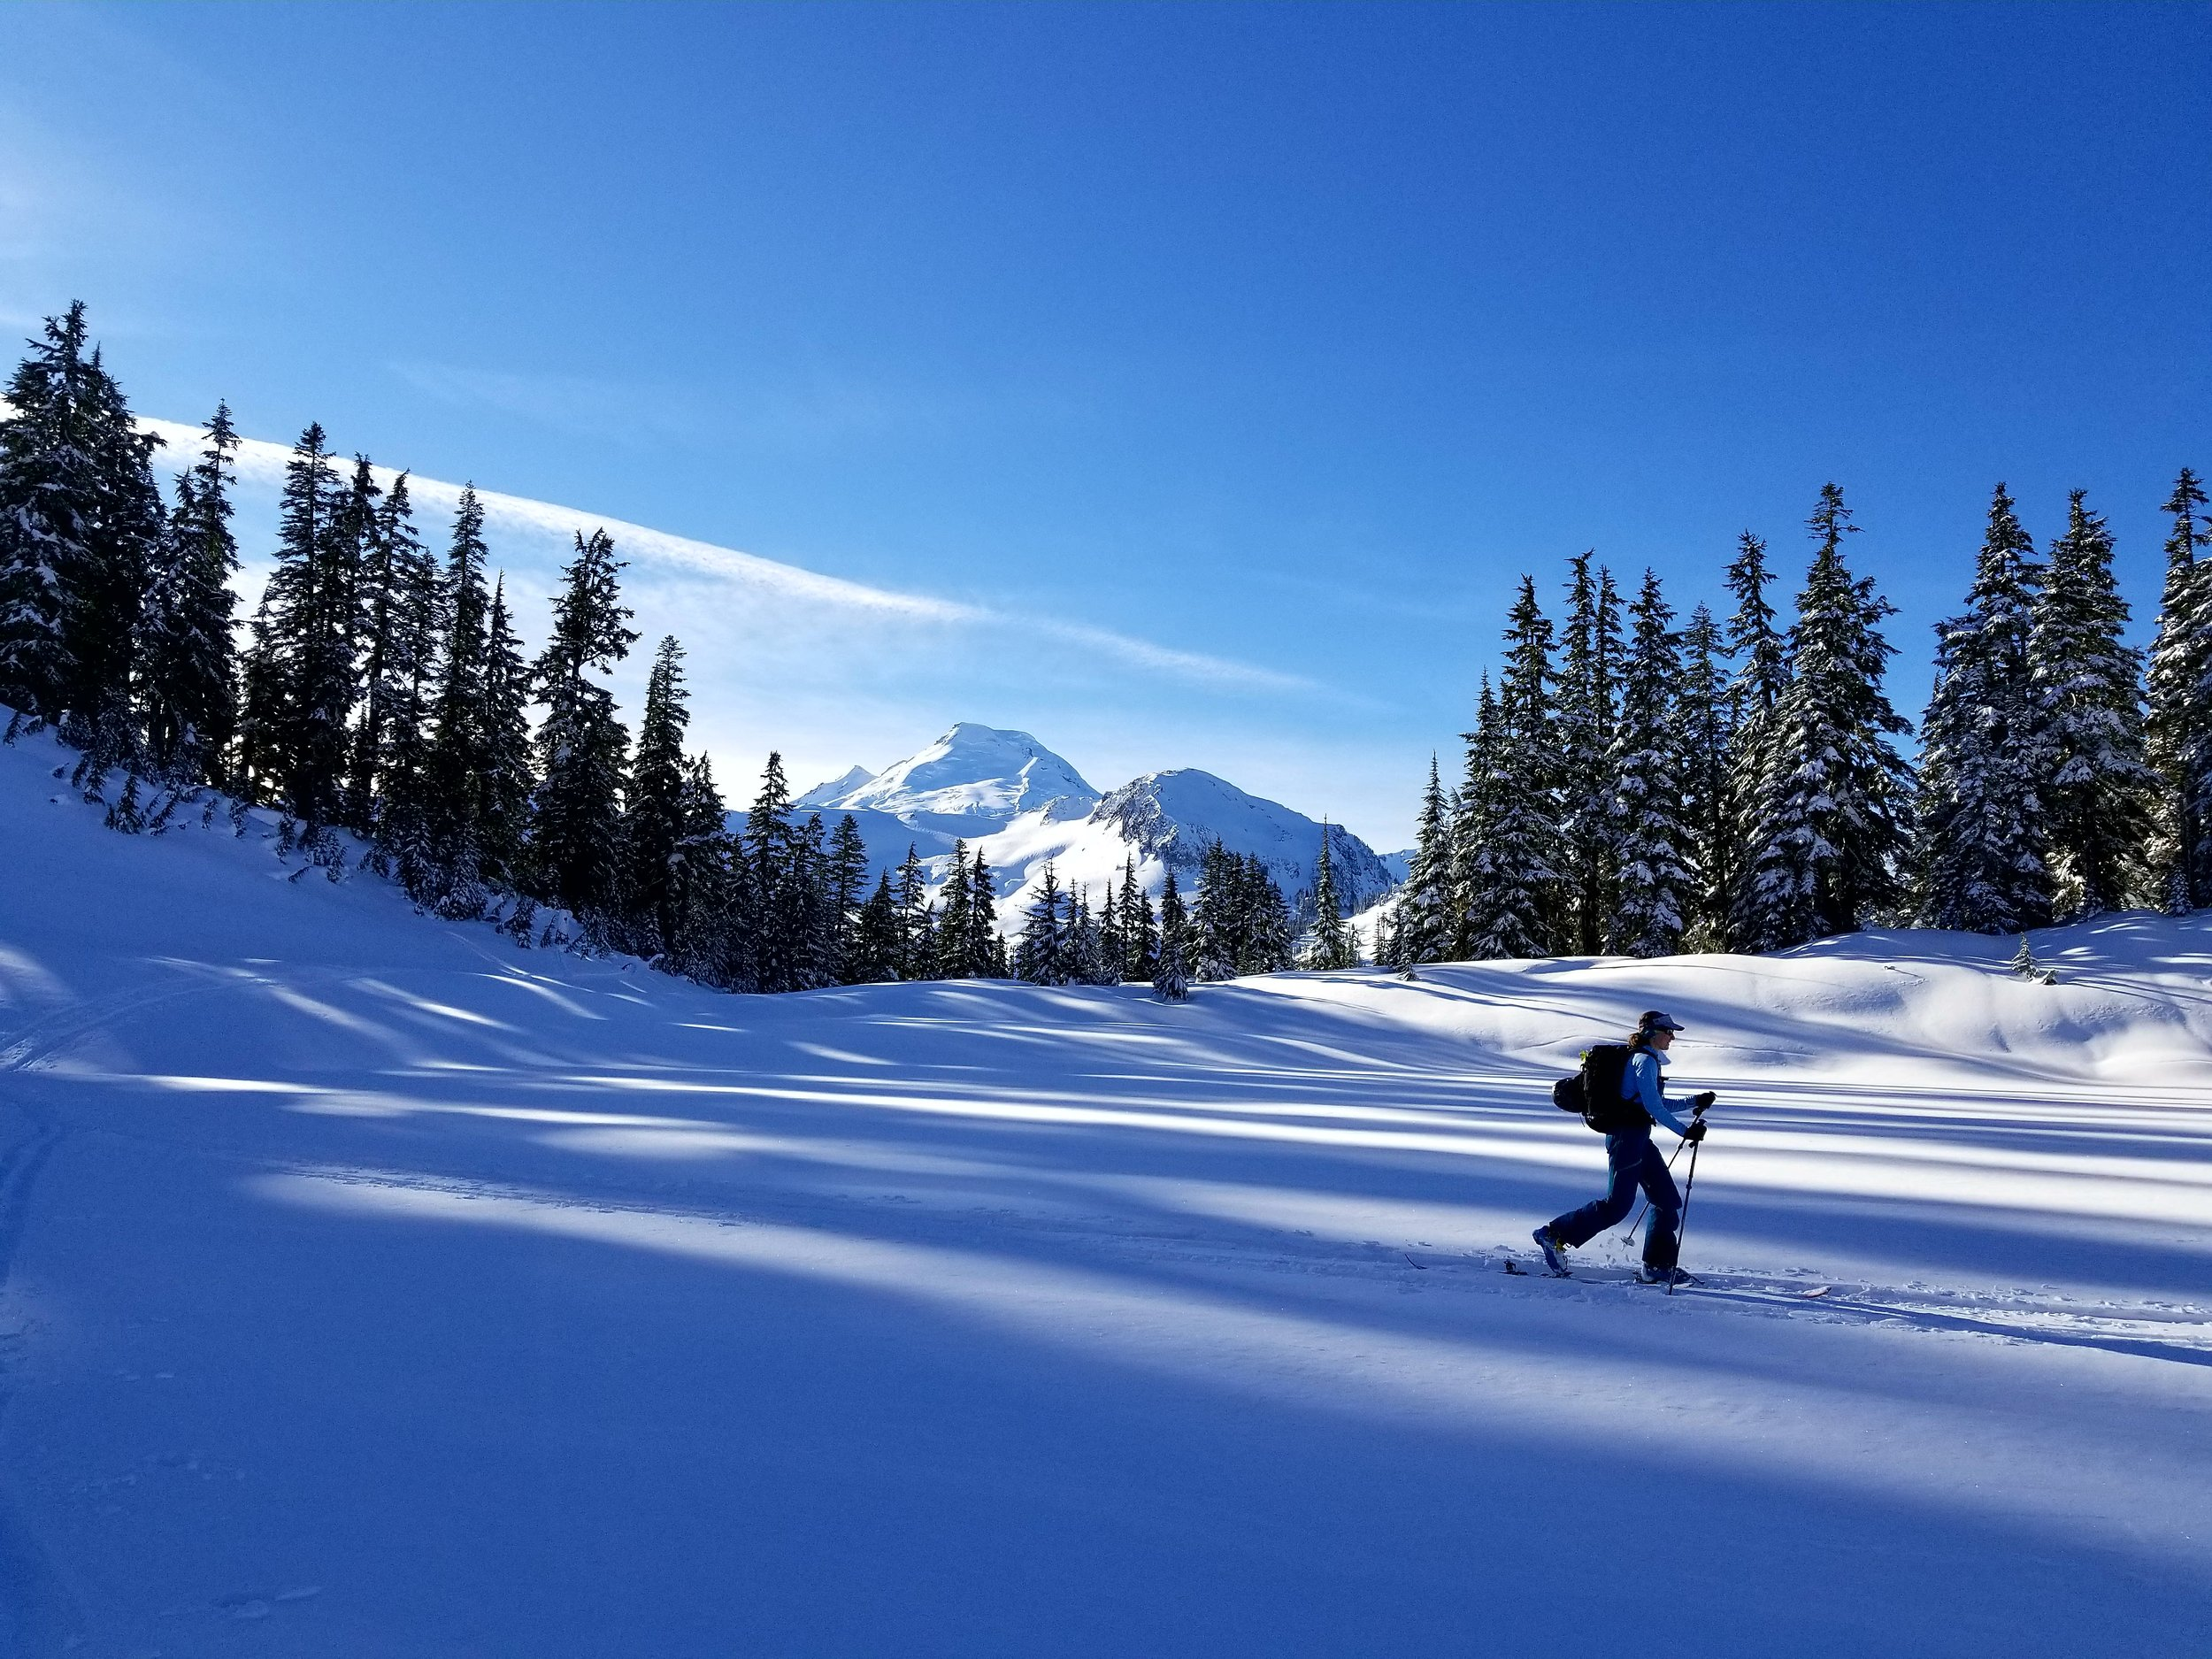 Something profound about crossing the shadows of giants in Mt Baker Wilderness.